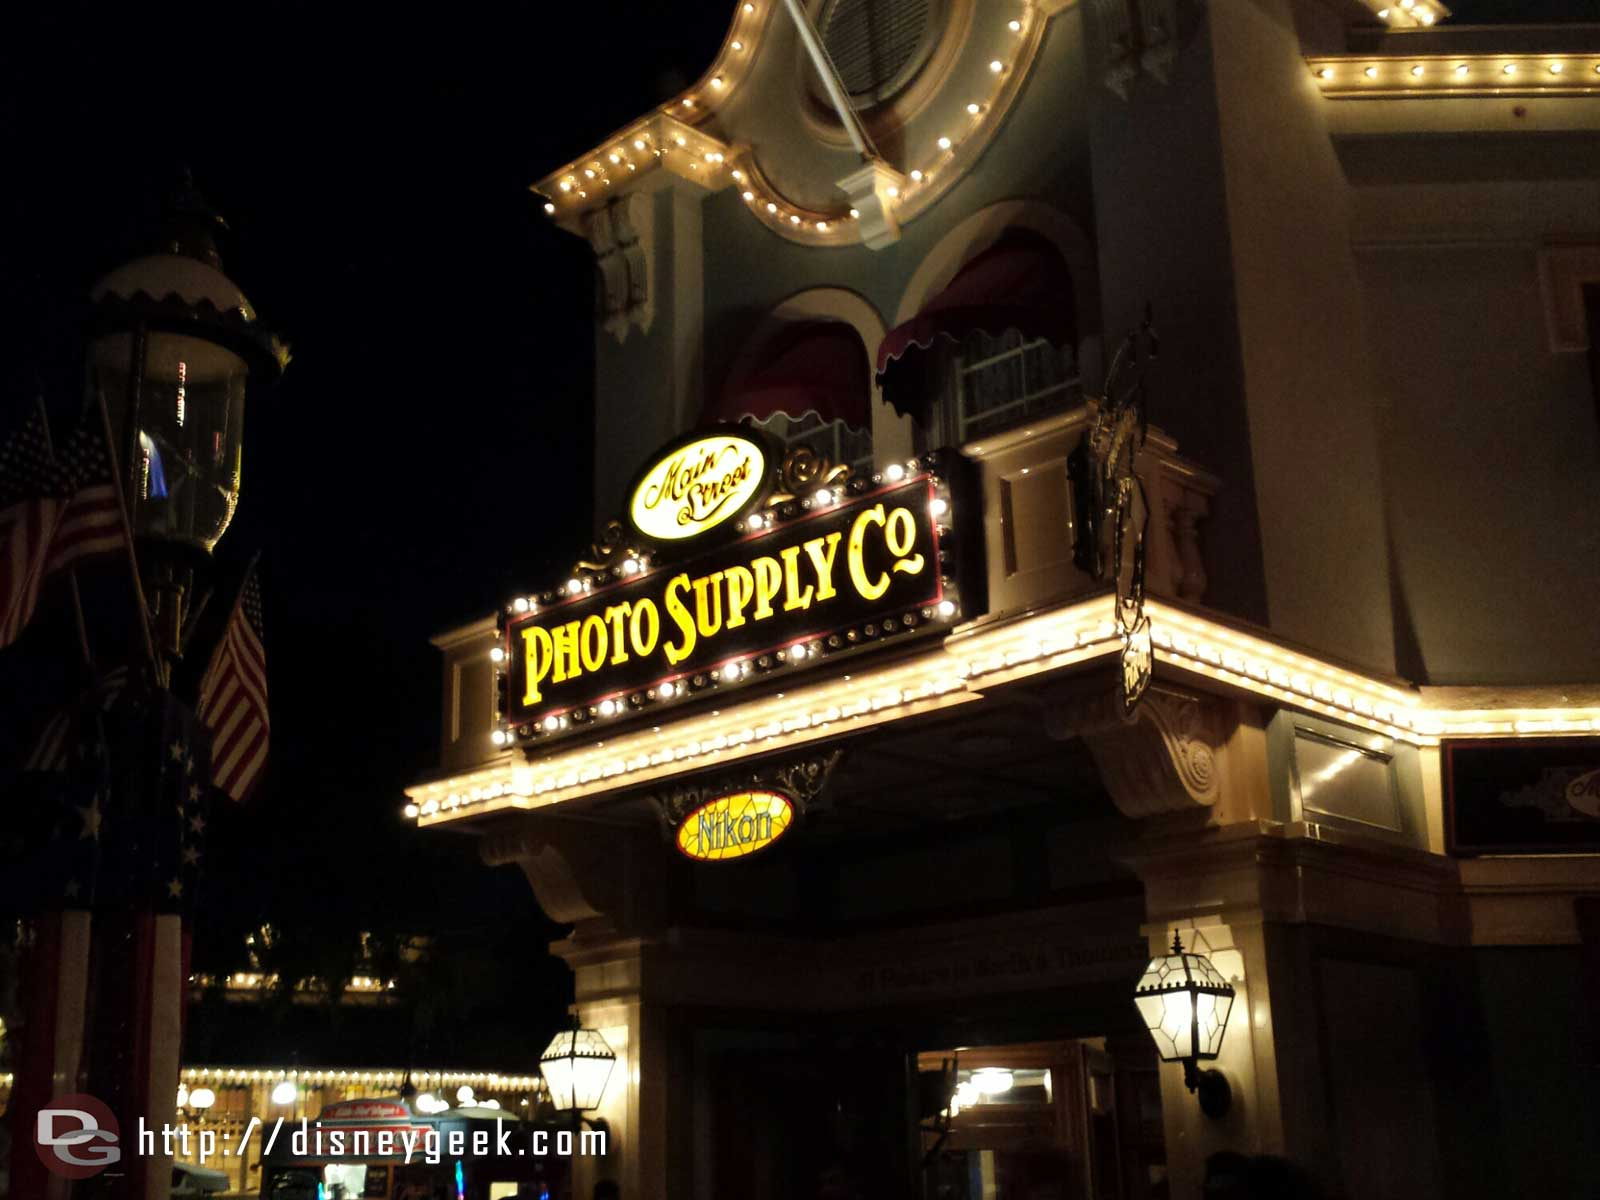 Main Street Photo Supply Co #Disneyland